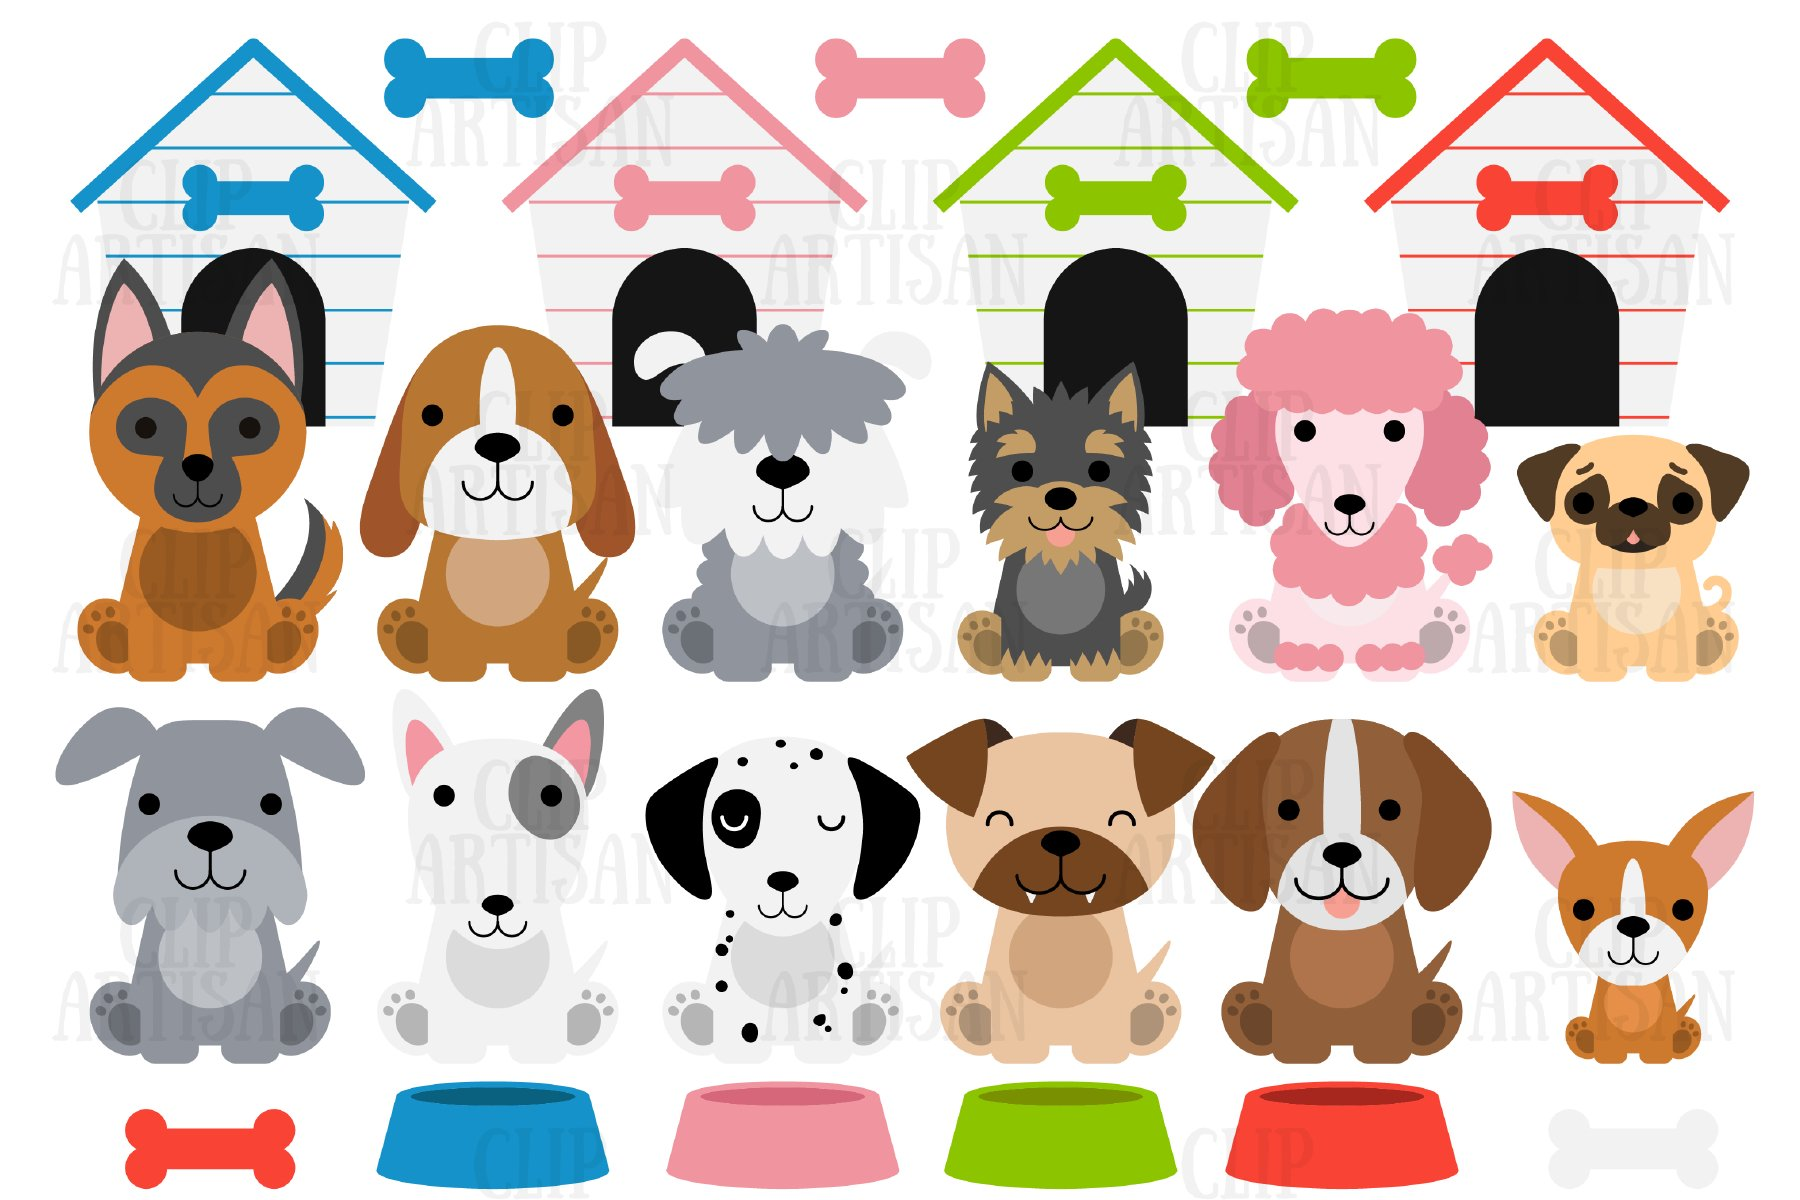 Dog Clipart Puppies Puppy Dog Cute Dogs 385350 Illustrations Design Bundles